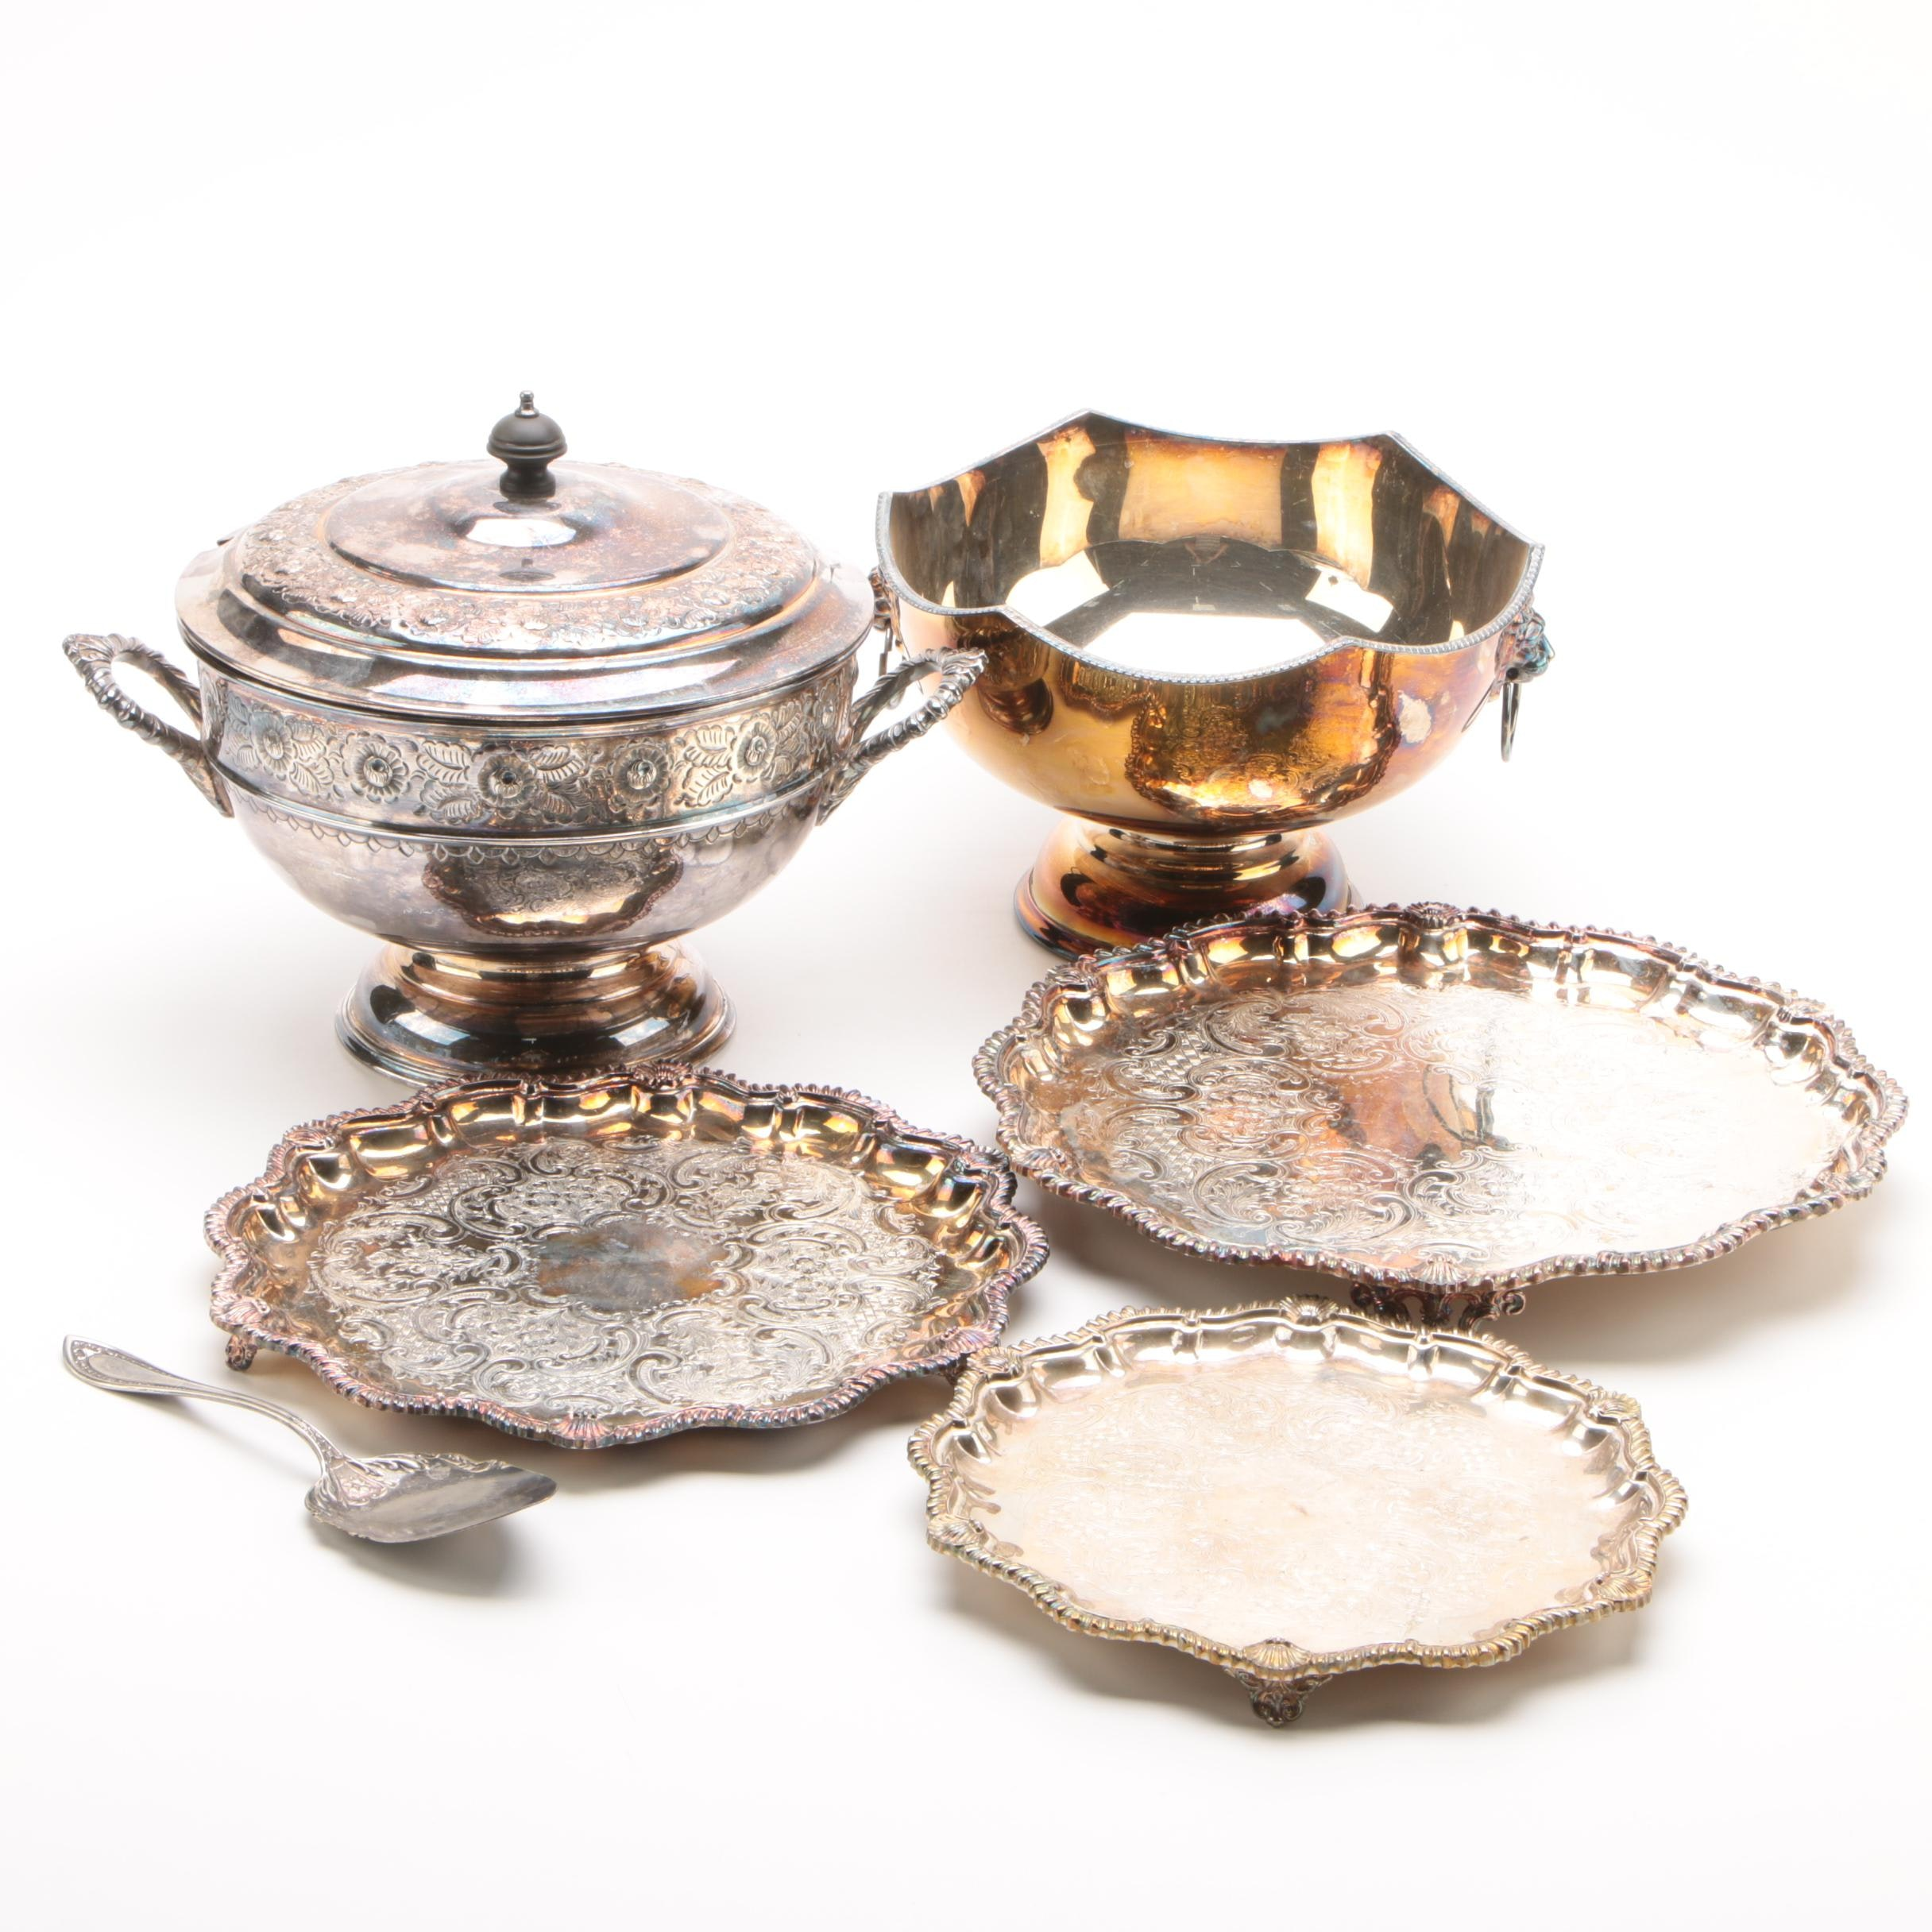 Viners Reproduction Old Sheffield Plate Centerpiece Bowl with Other Silver Plate